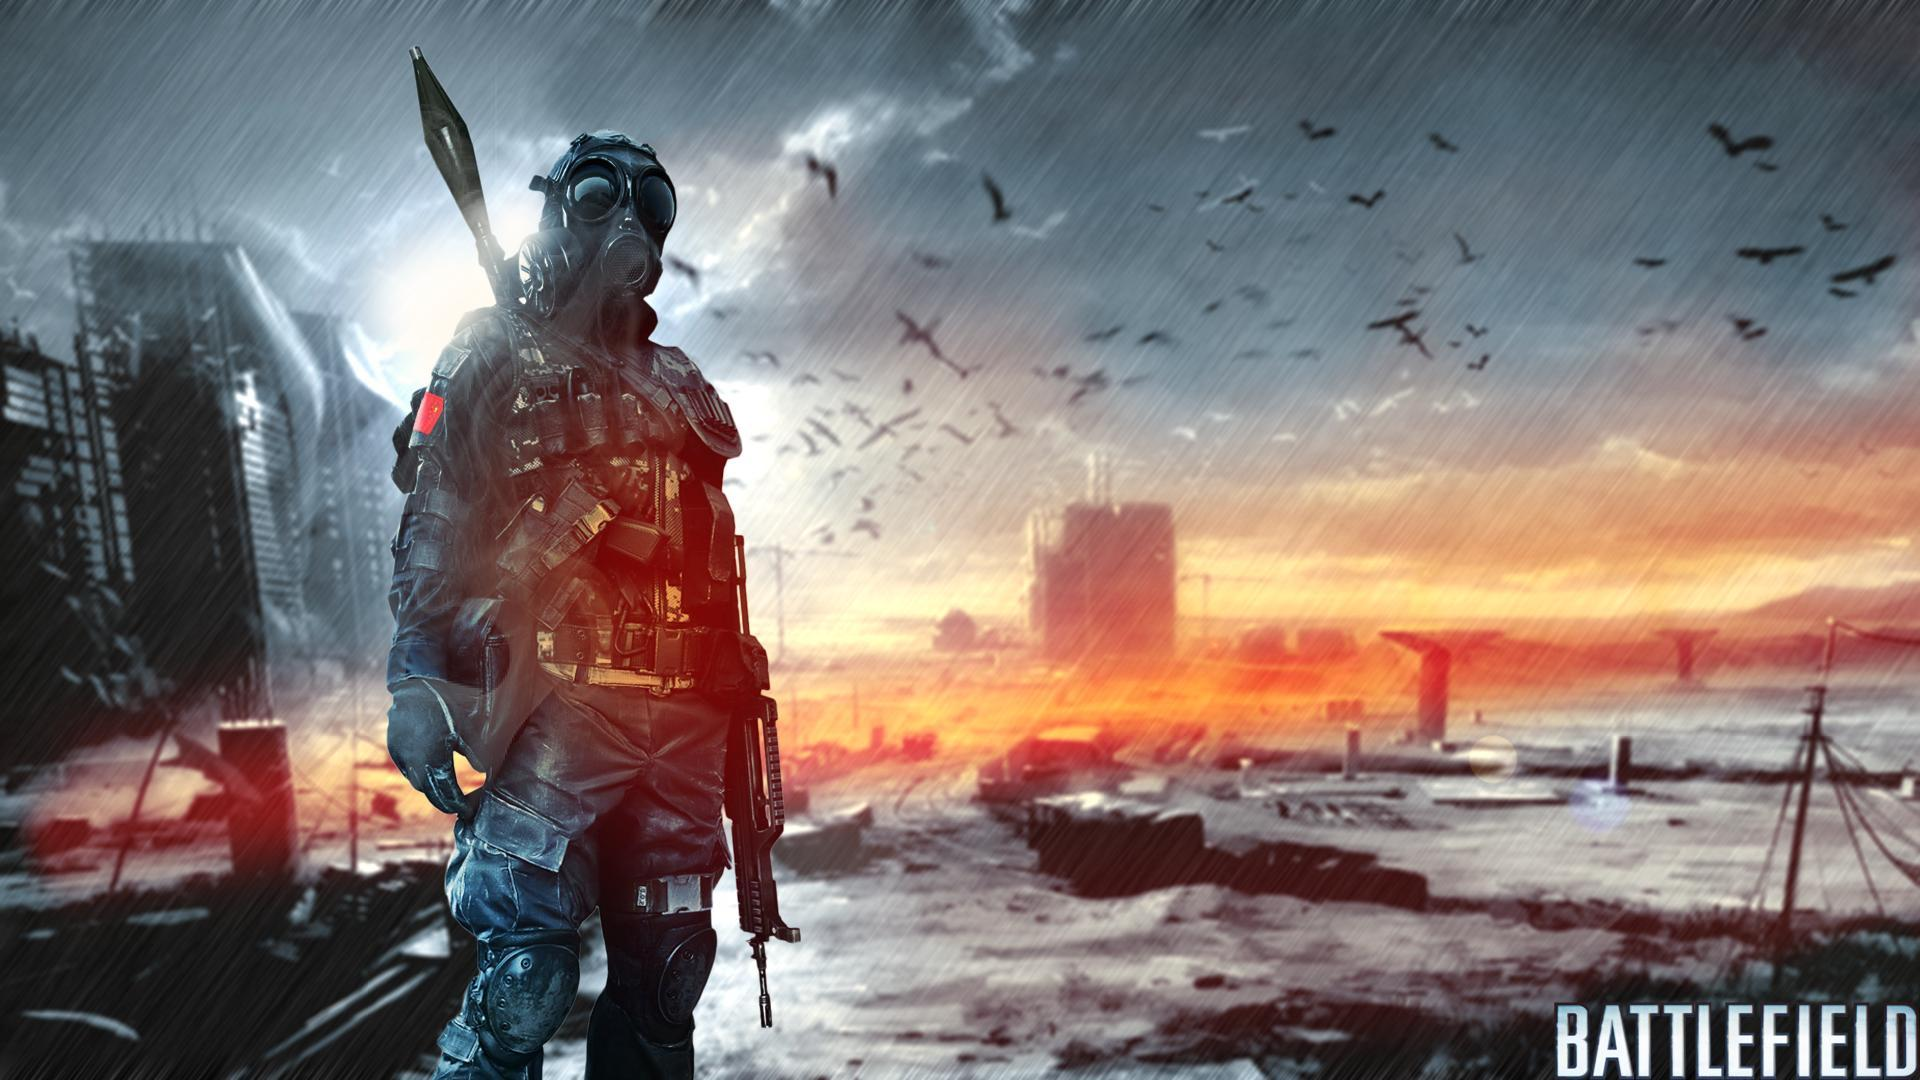 1536x2048 battlefield 4 wallpaper - photo #30